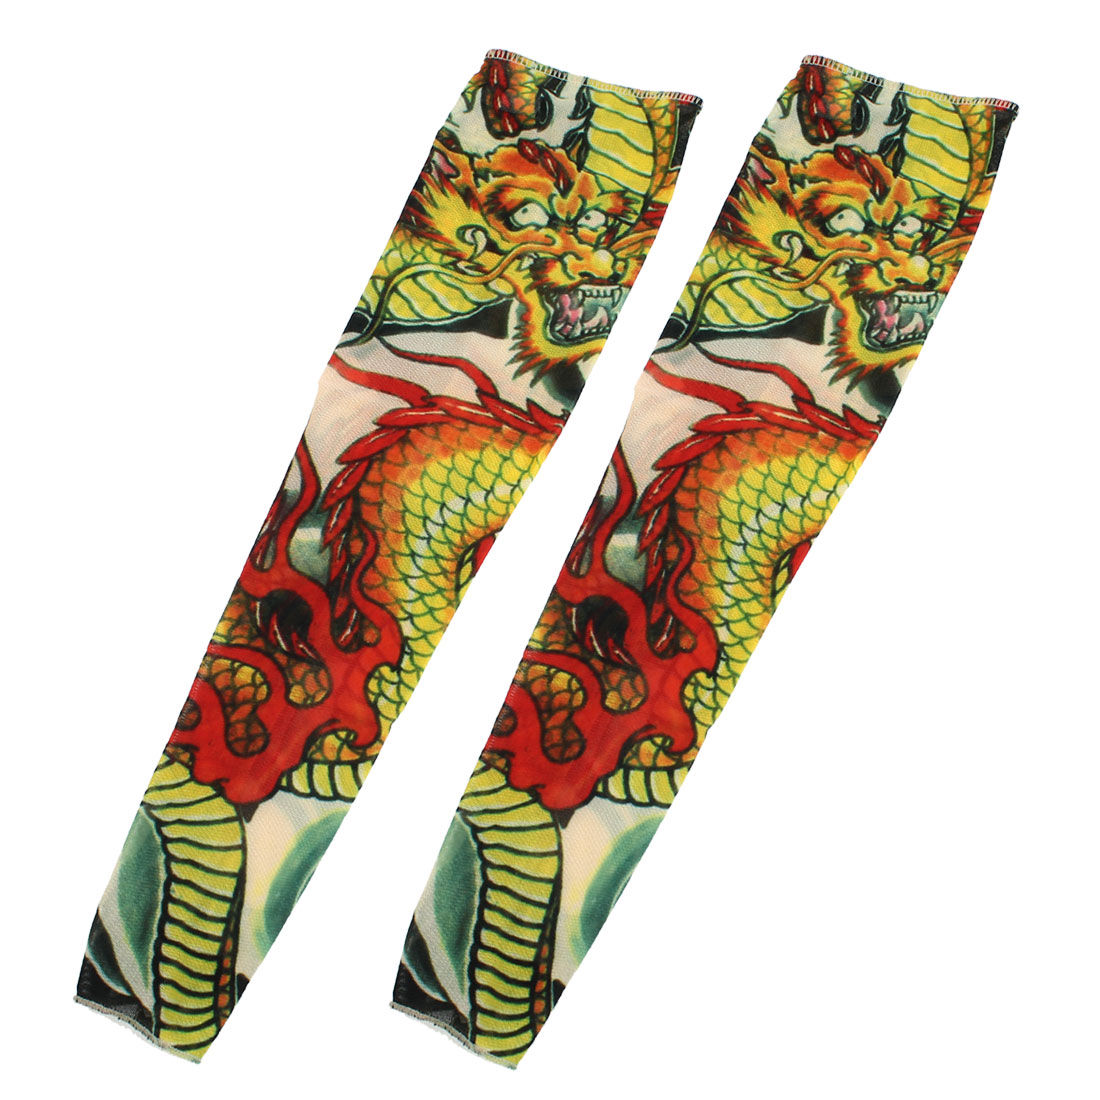 Unique Bargains 1 Pair Summer Stretchy Unisex Dragon Pattern UV Sun Protection Tattoo Arm Sleeves